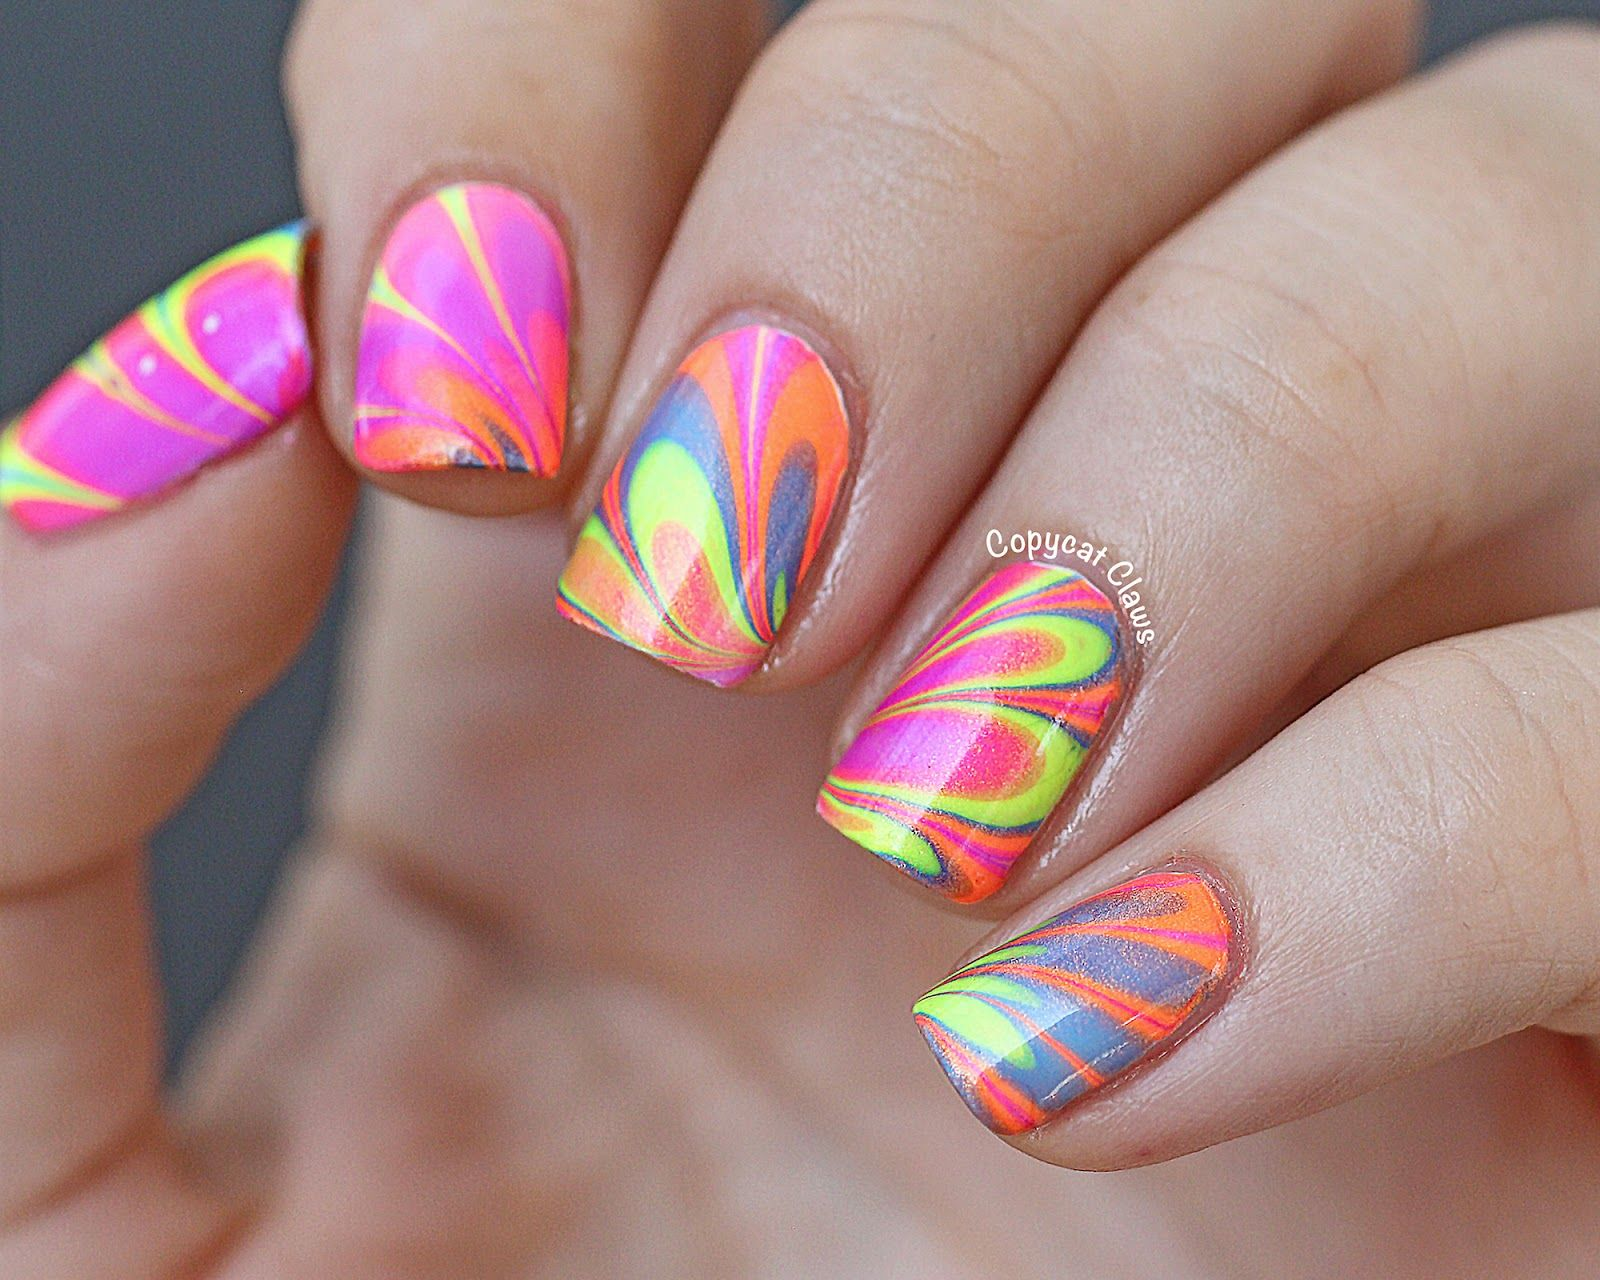 Neon Water Marble Nails | And more NAIL ART... | Pinterest | Water ...